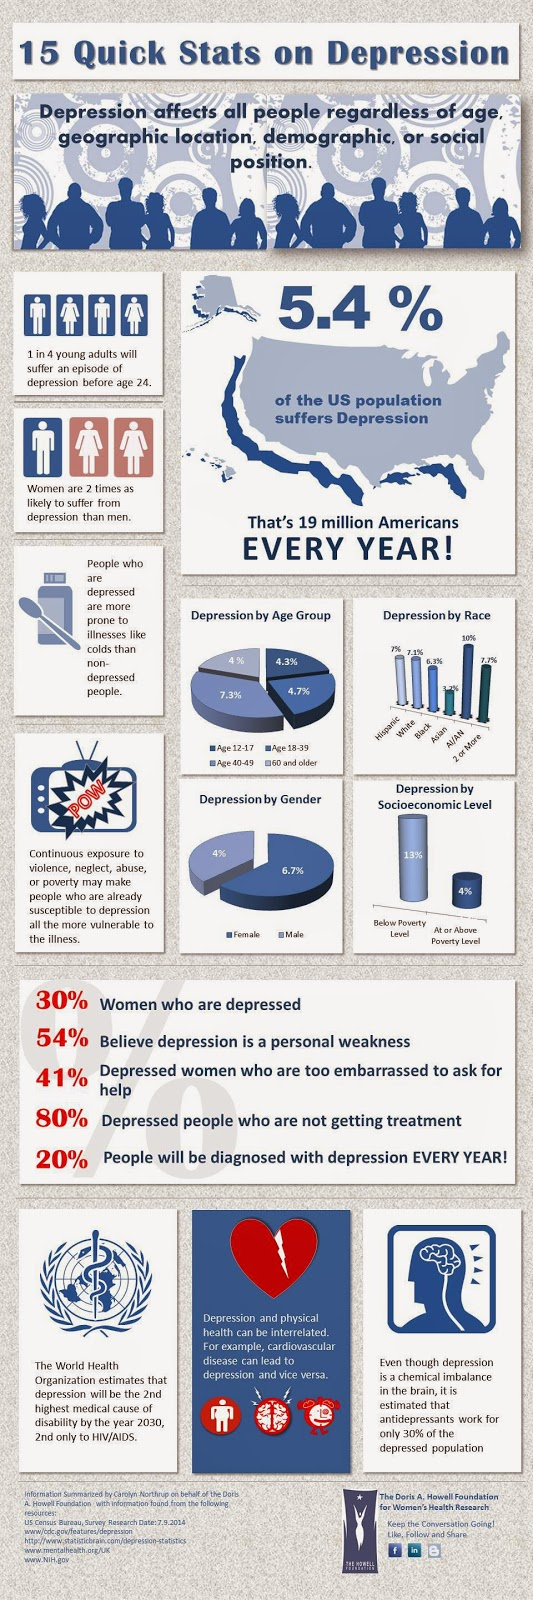 Facts on Depression:  A summary by Carolyn Northrup for the Doris A. Howell Foundation